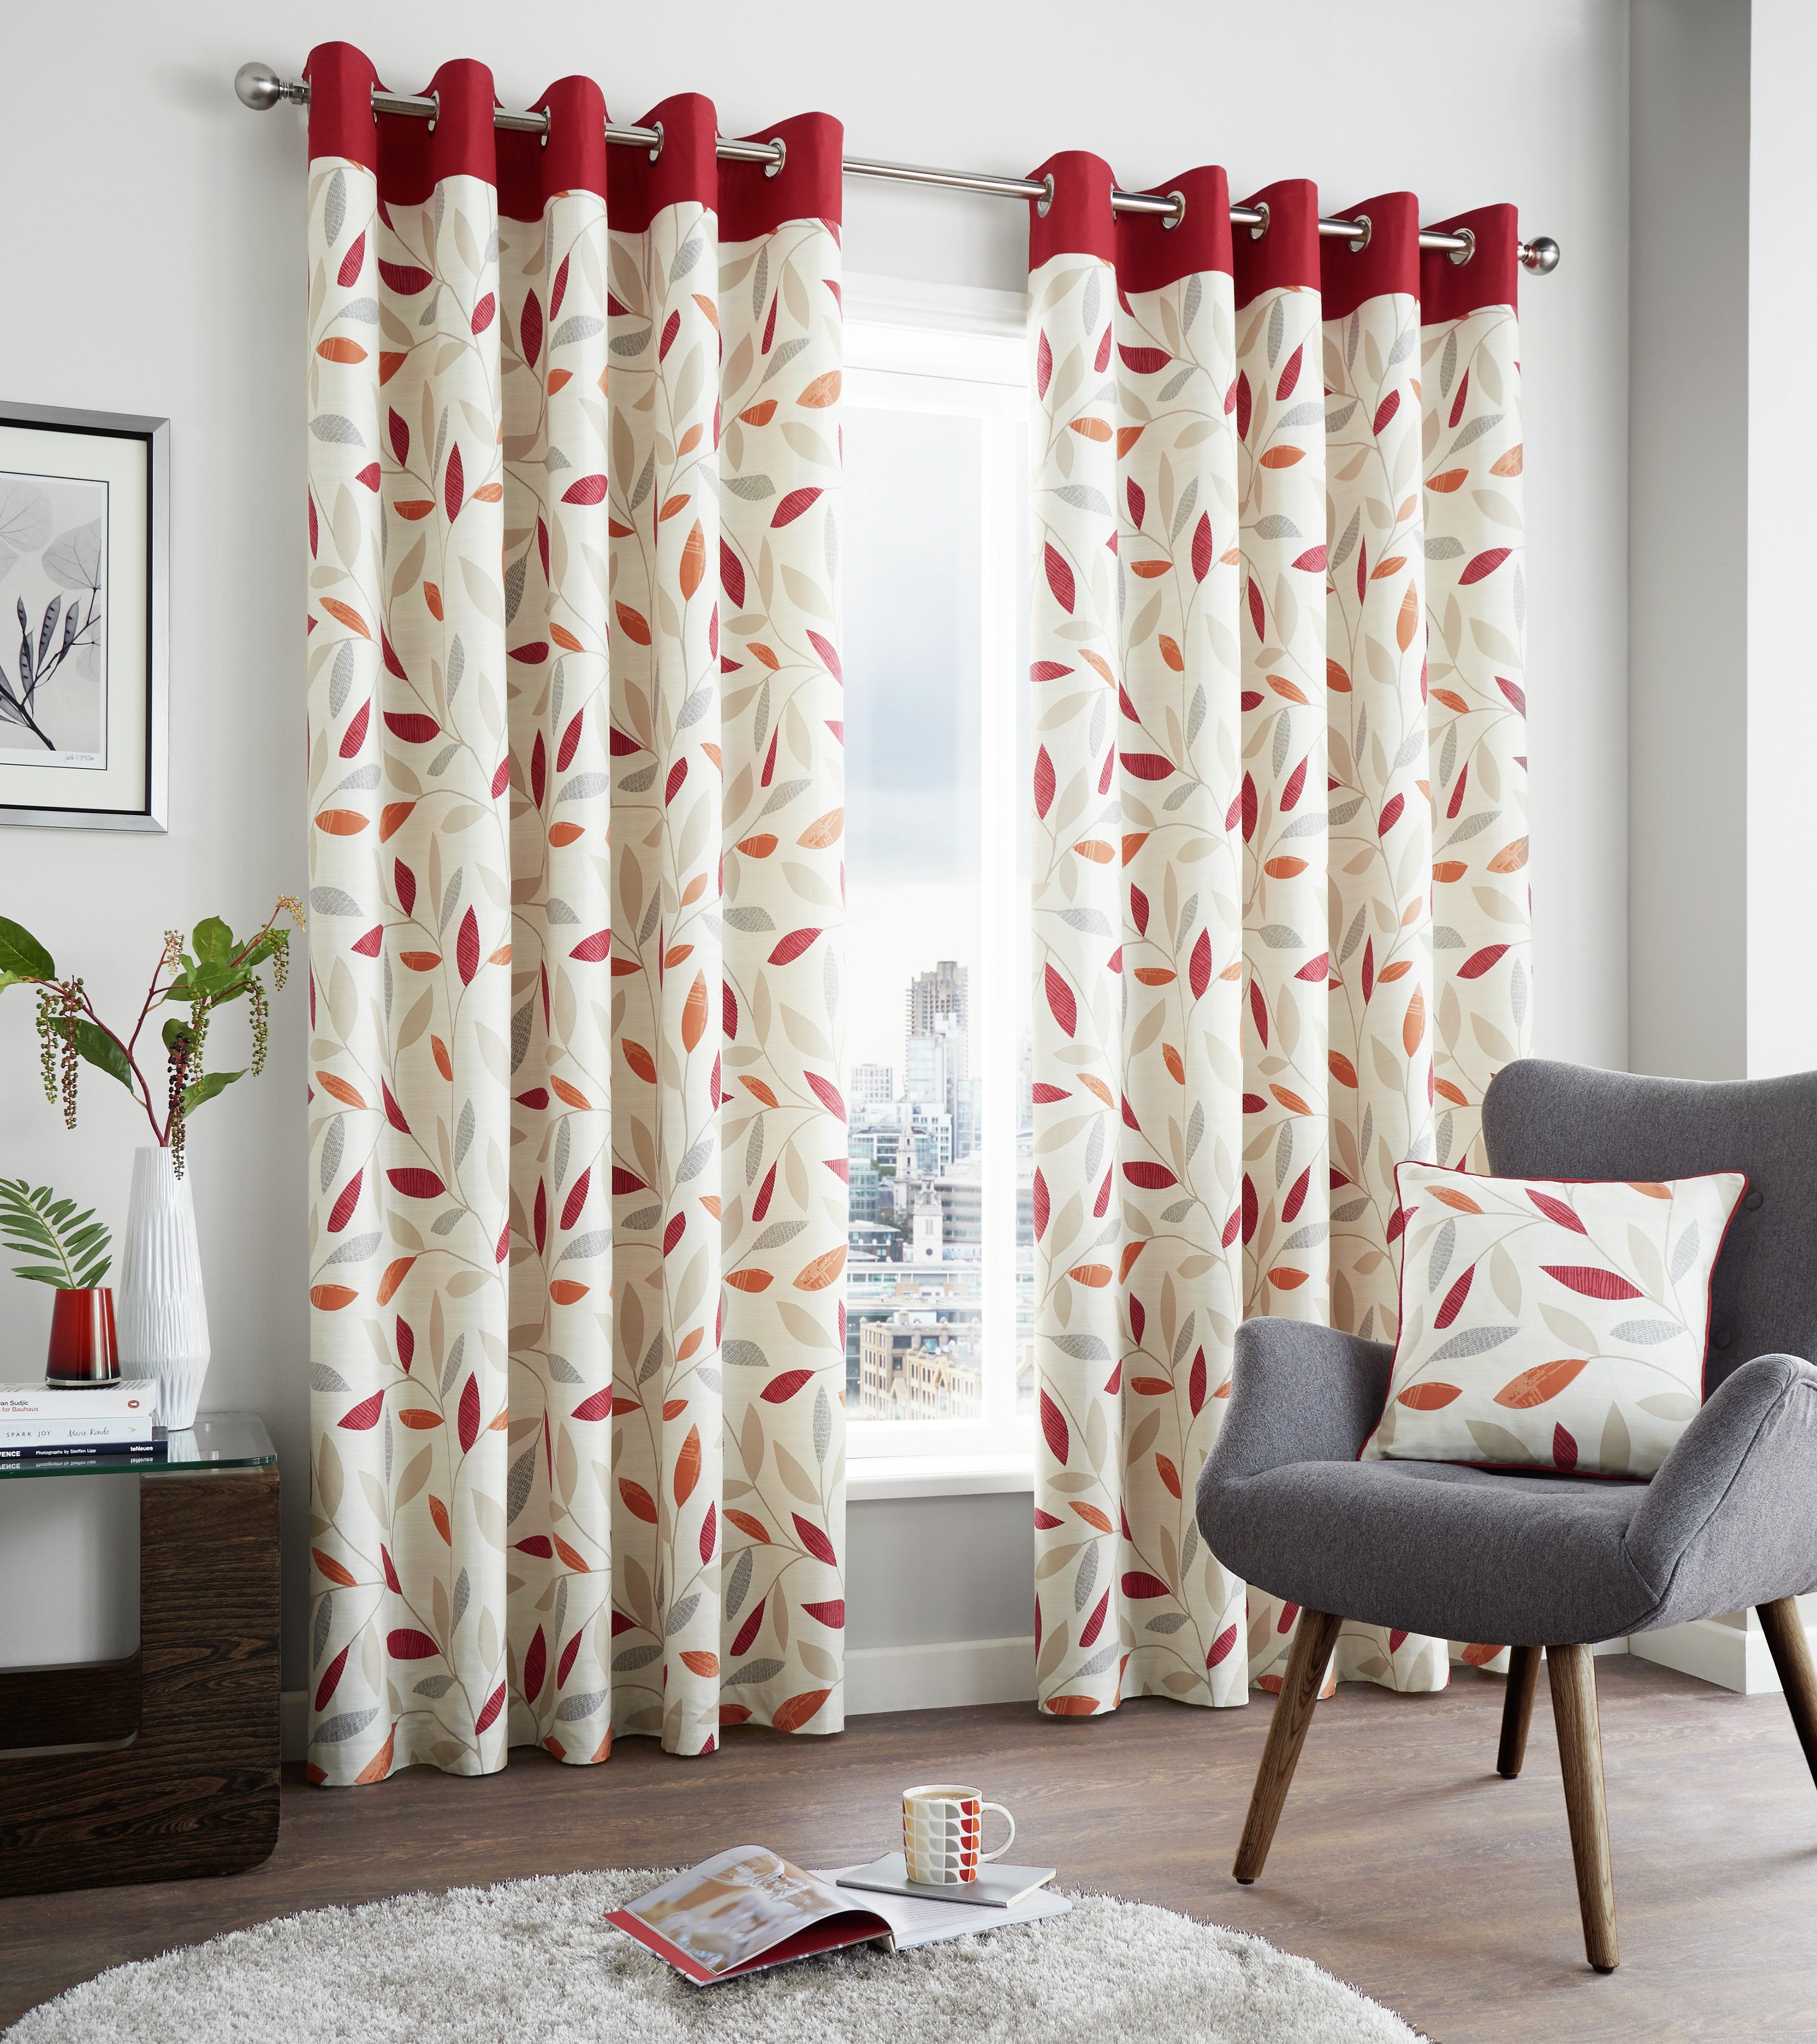 Image of Fusion Beechwood Lined Curtains - 168x229cm - Red.